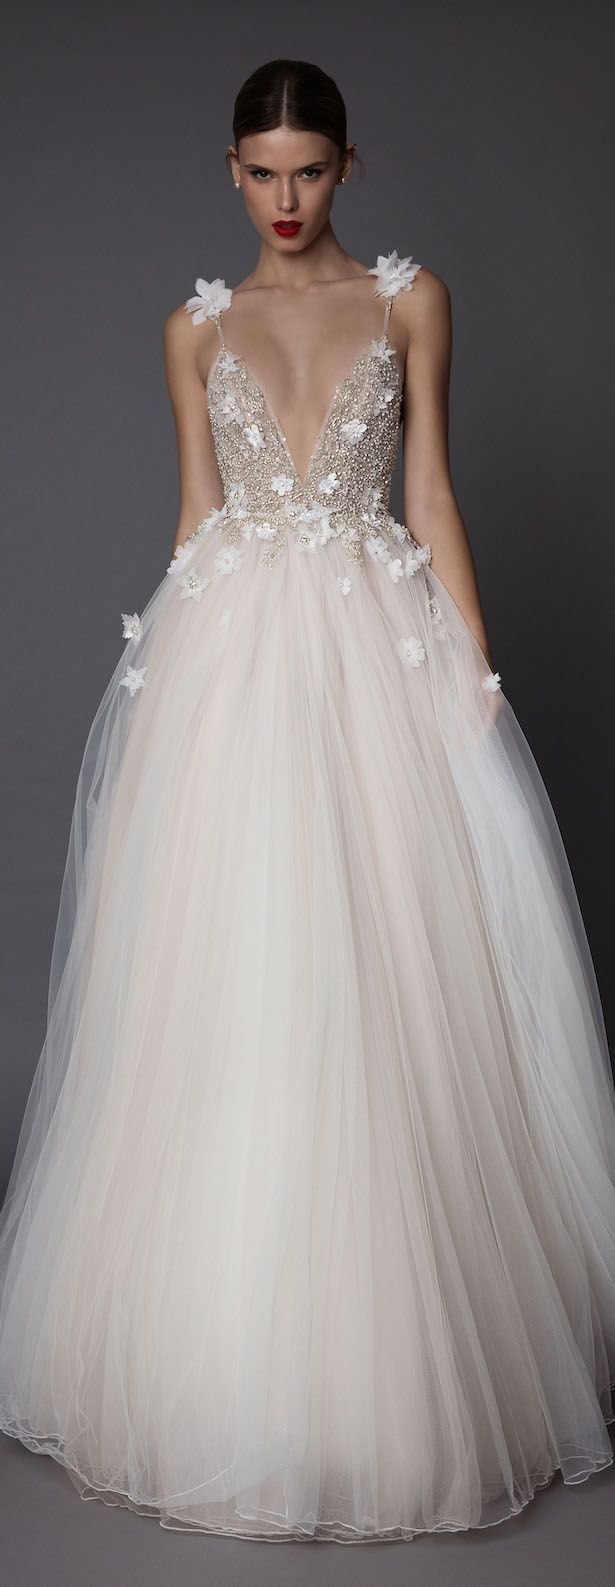 Muse by berta wedding dress wedding dresses pinterest